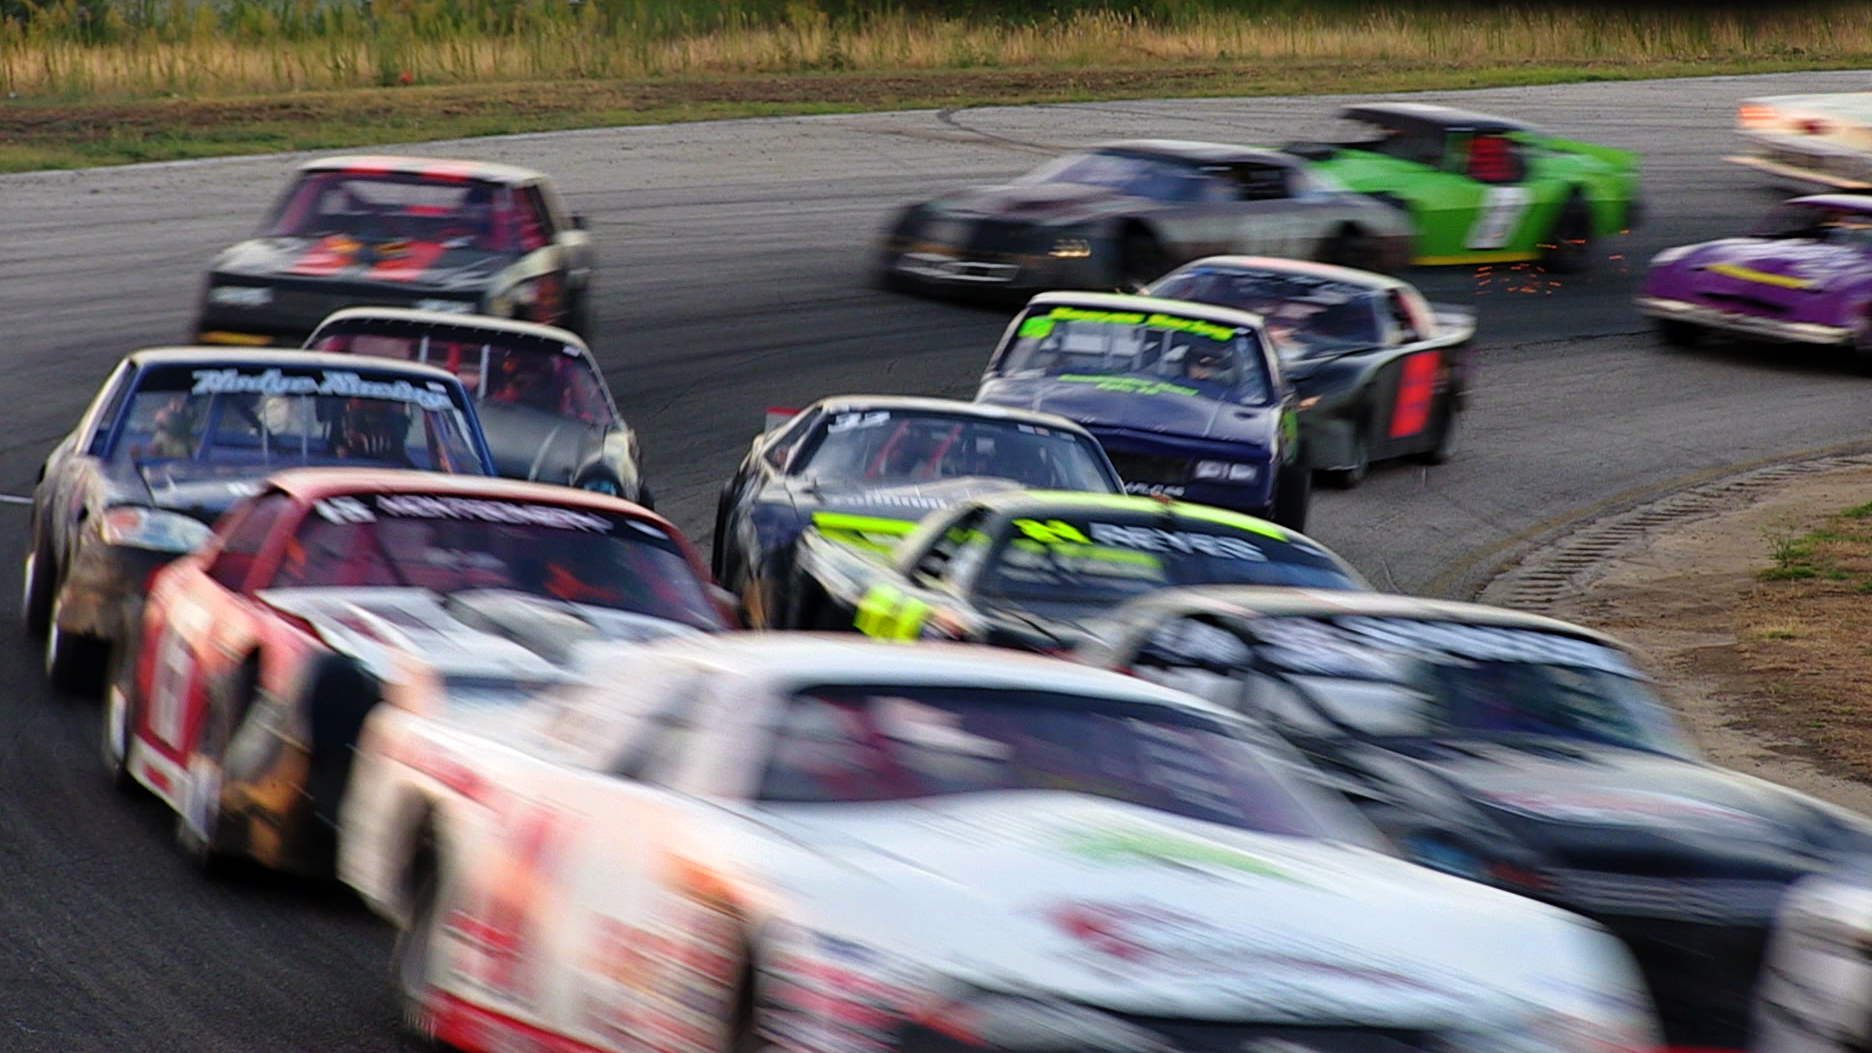 Video: Rubbin'. Shuntin'. Bumpin': The world's best racing is in Texas